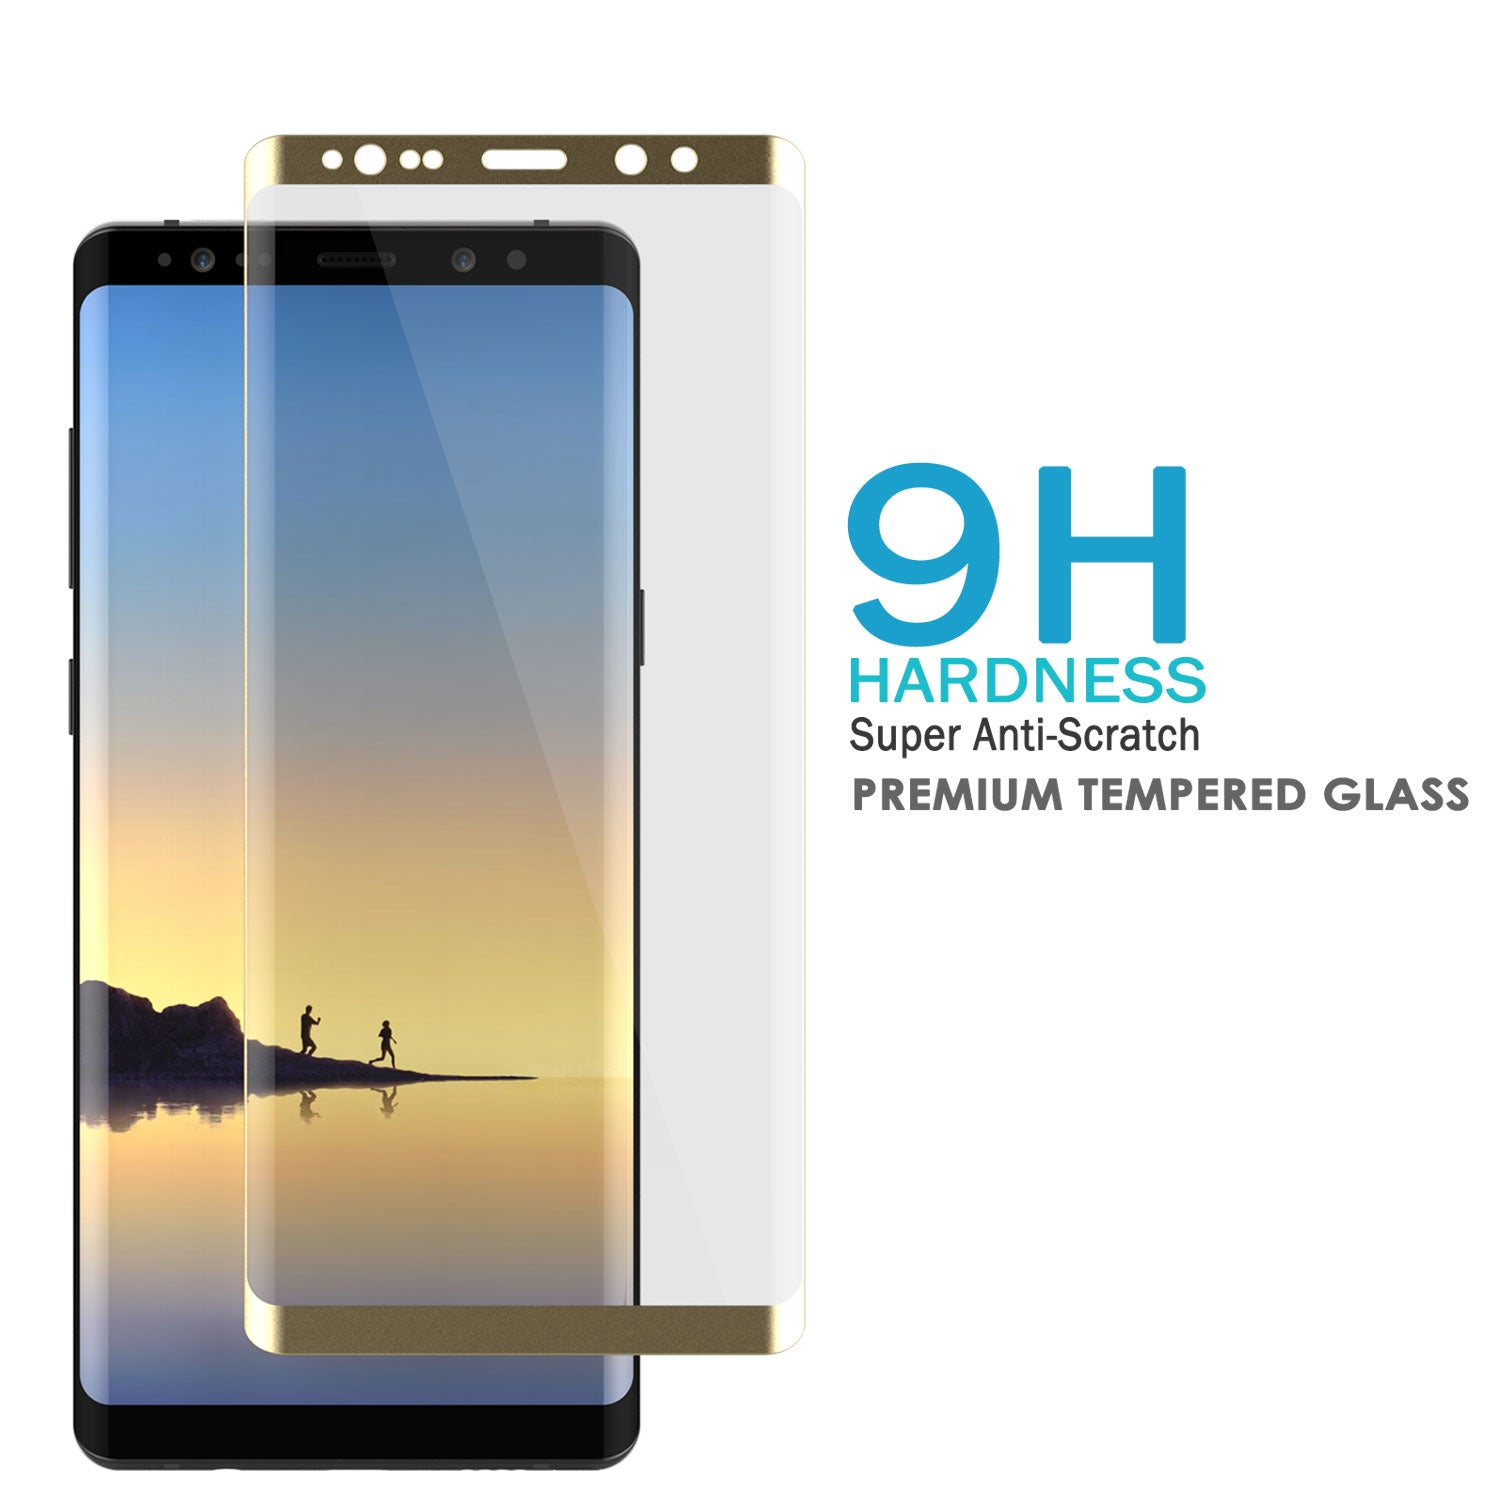 Galaxy S8+ Plus  Gold Punkcase Glass SHIELD Tempered Glass Screen Protector 0.33mm Thick 9H Glass